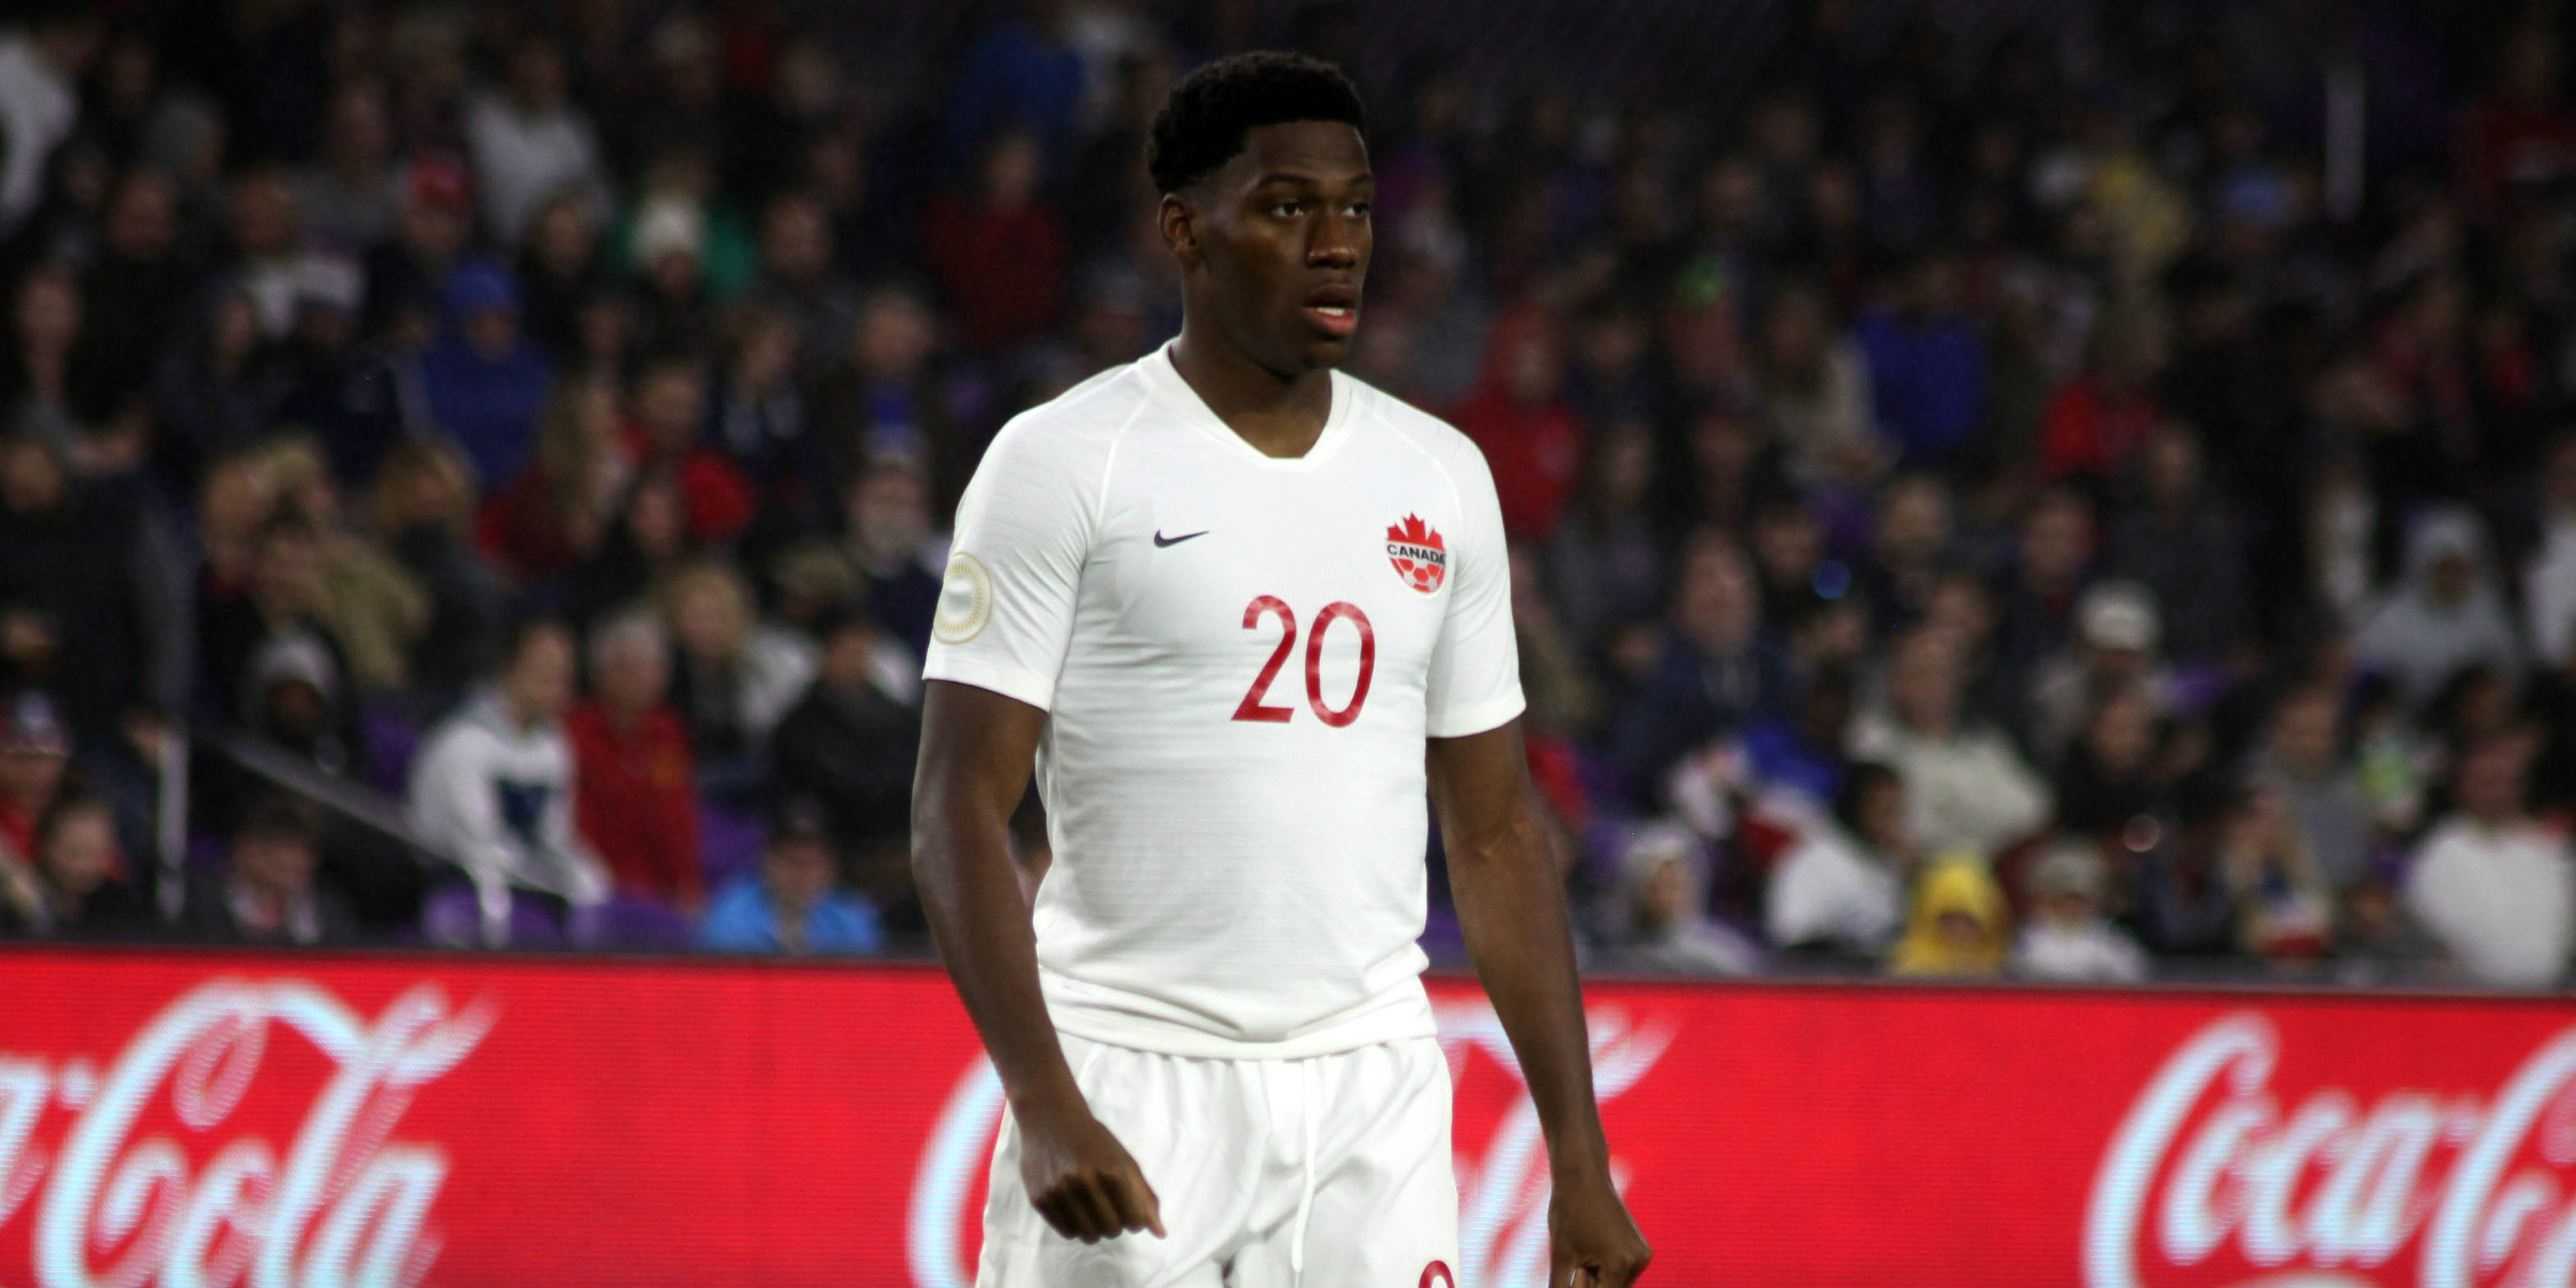 O'CONNOR-CLARKE: Where does the CanMNT go from here?